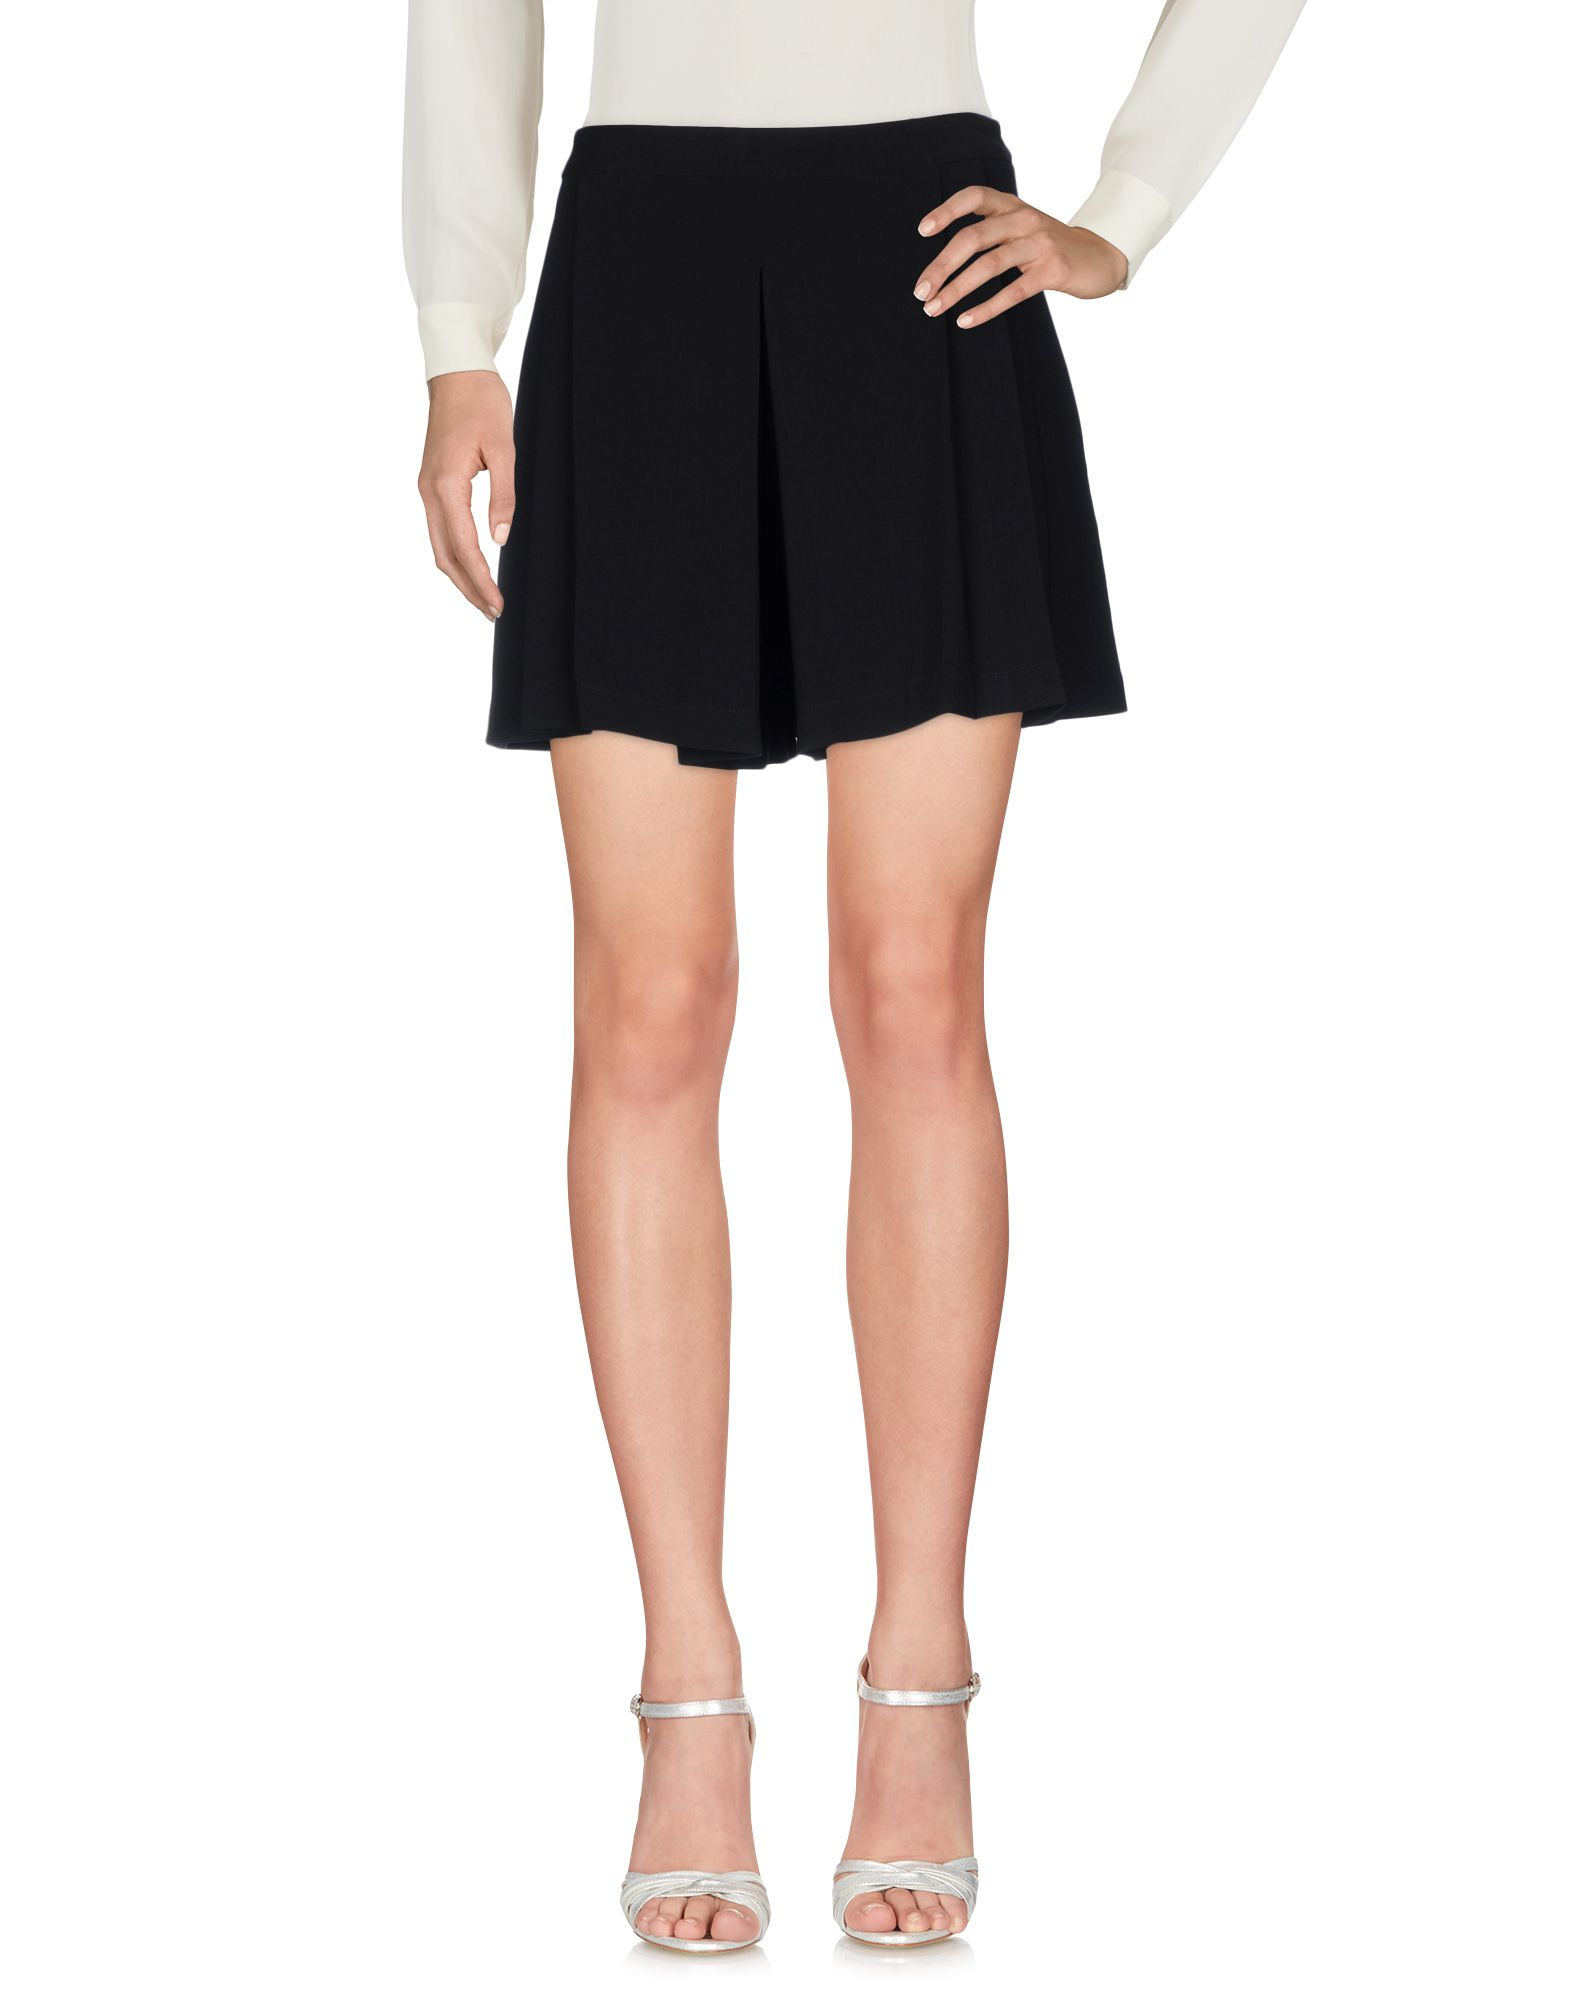 GUESS BY MARCIANO Мини-юбка юбка marciano guess 62g719 7980z g434